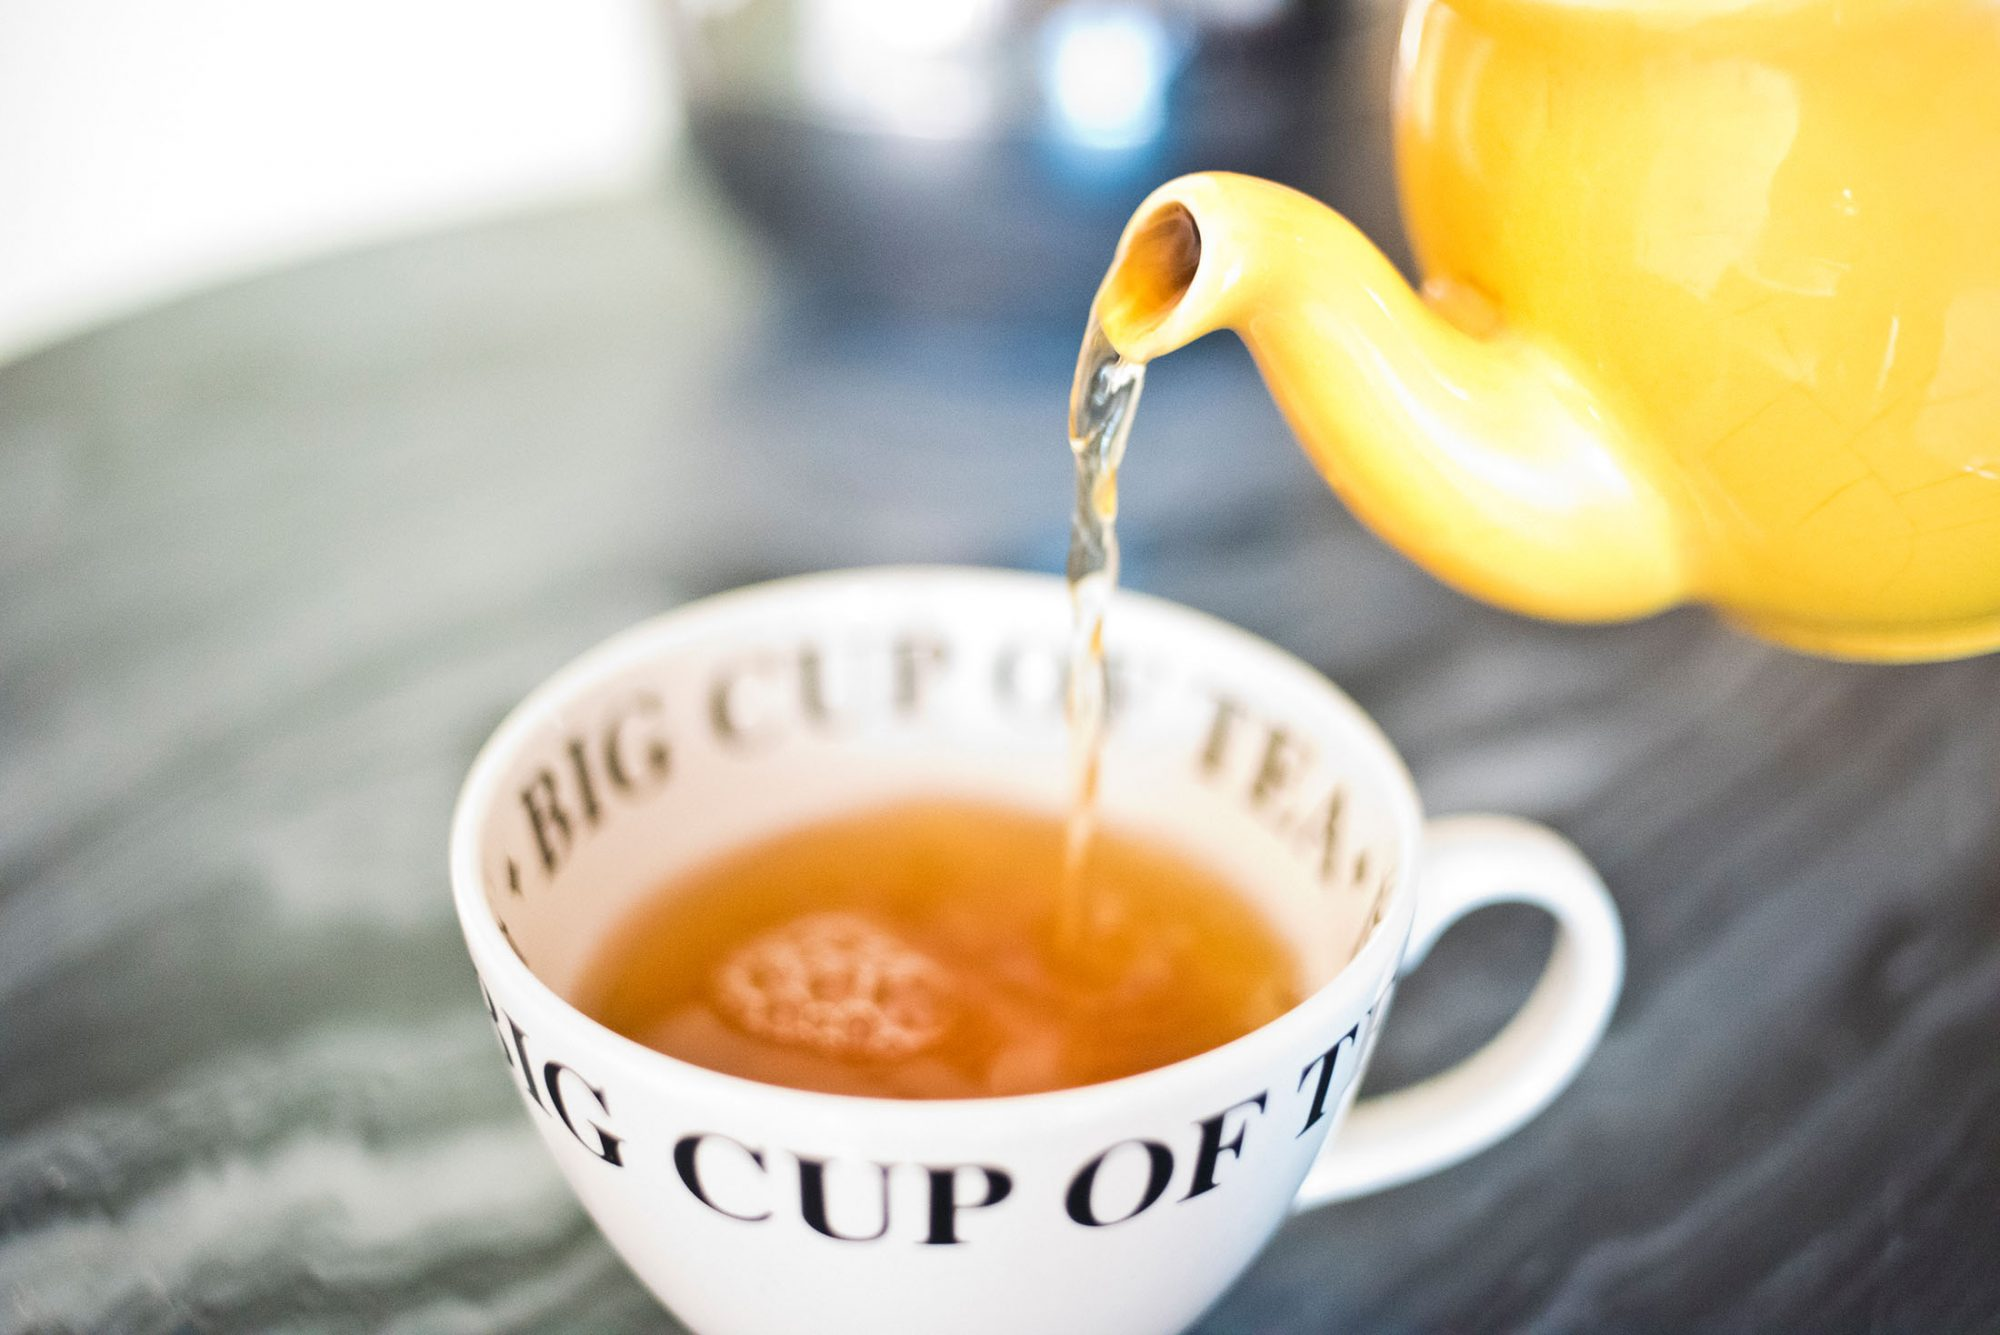 041620_Getty Cup of Tea